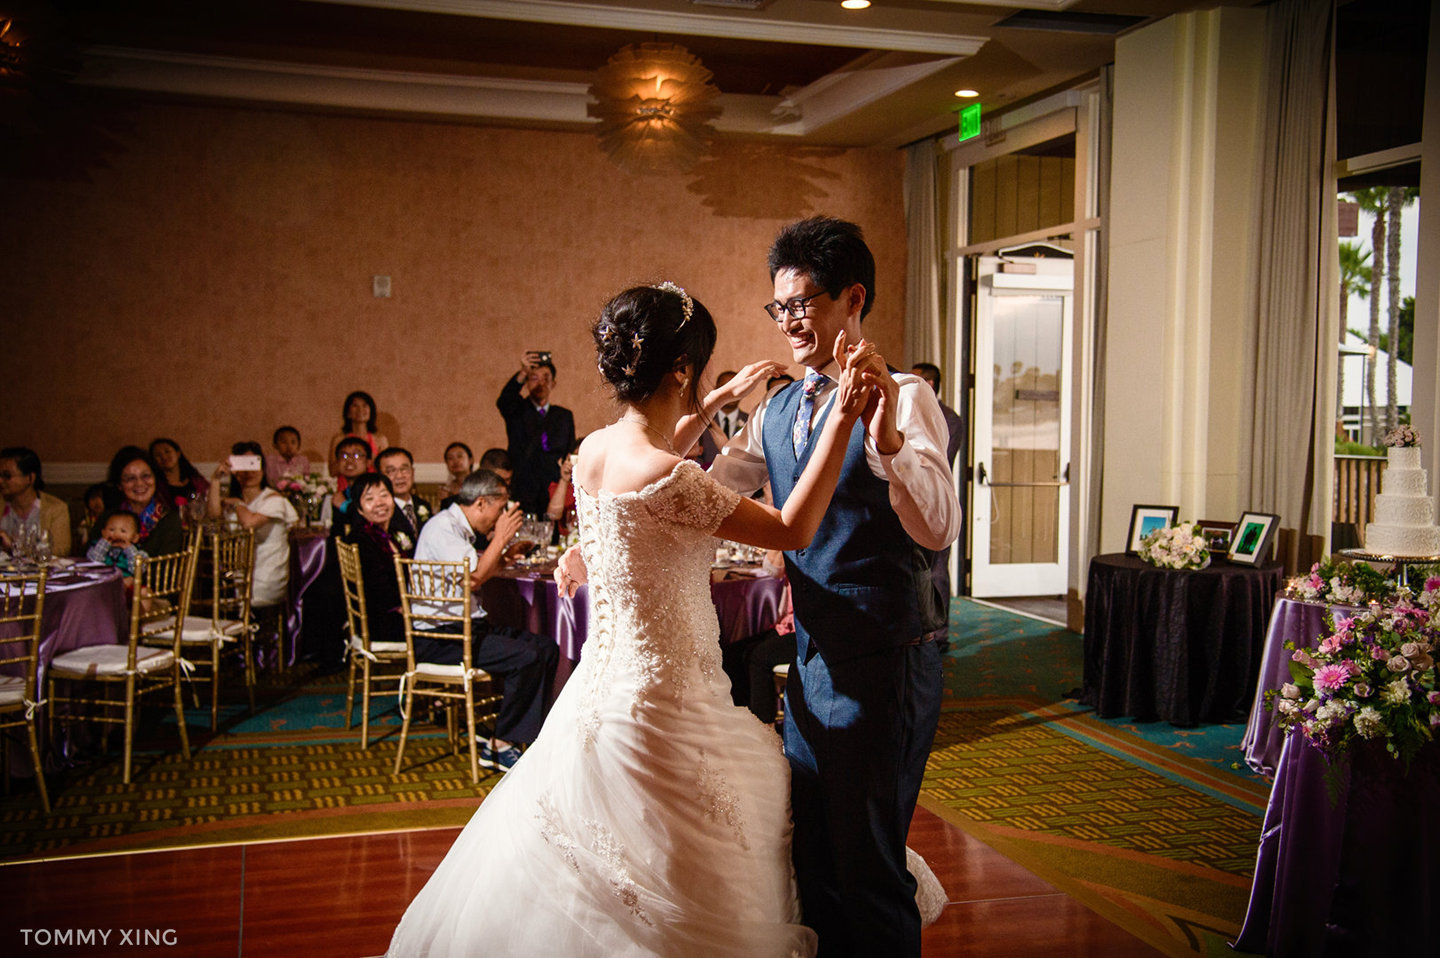 Paradise Point Resort Wedding Xiaolu & Bin San Diego 圣地亚哥婚礼摄影跟拍 Tommy Xing Photography 洛杉矶婚礼婚纱照摄影师 228.jpg